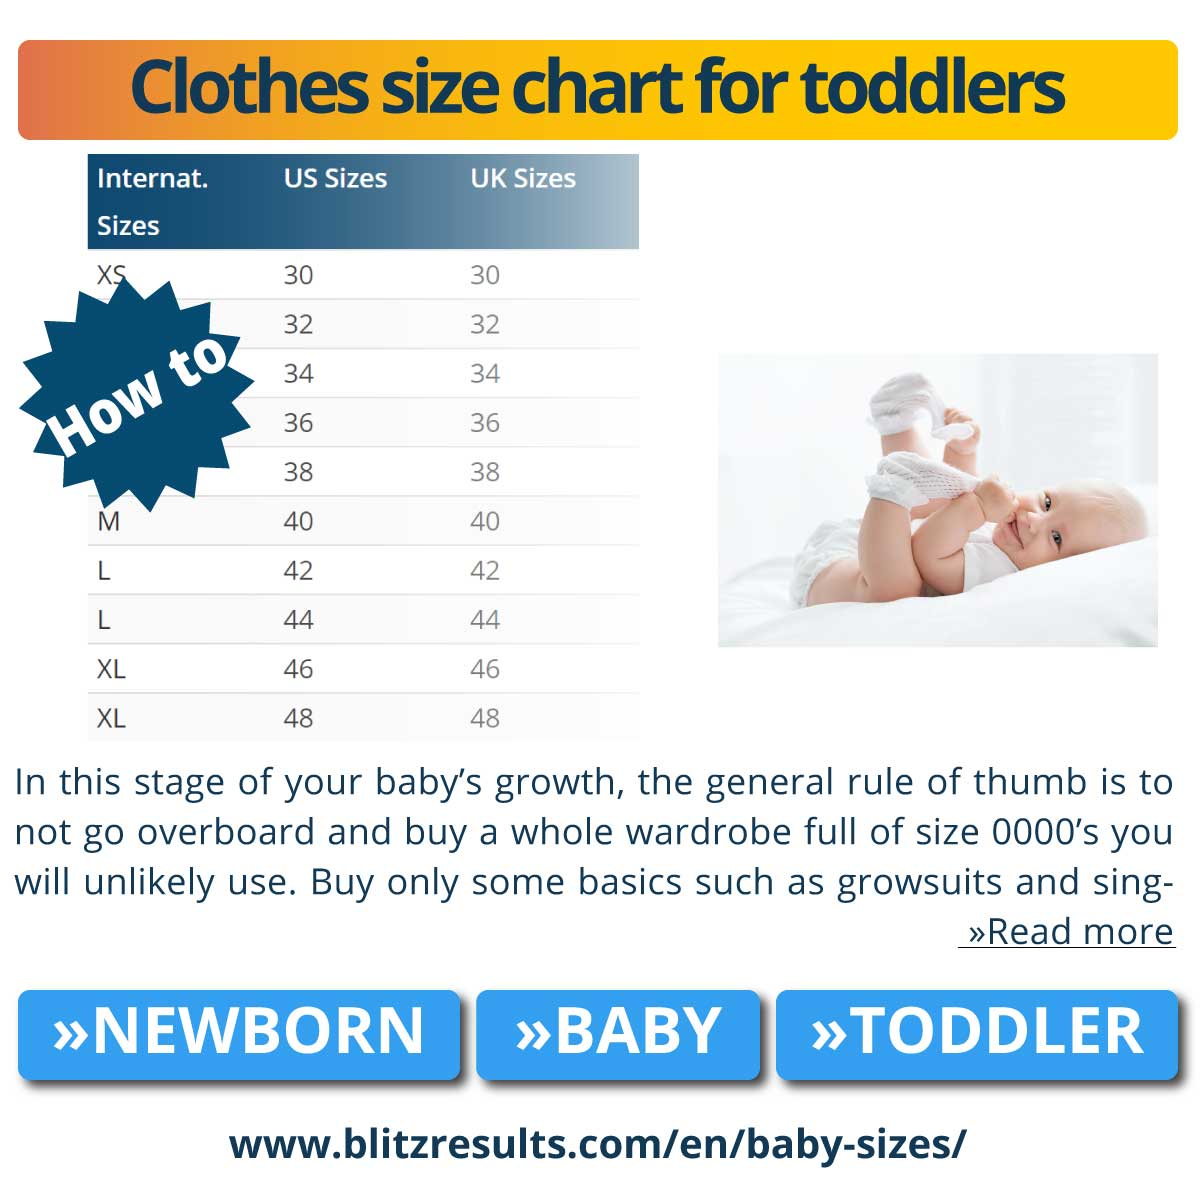 Clothes size chart for toddlers